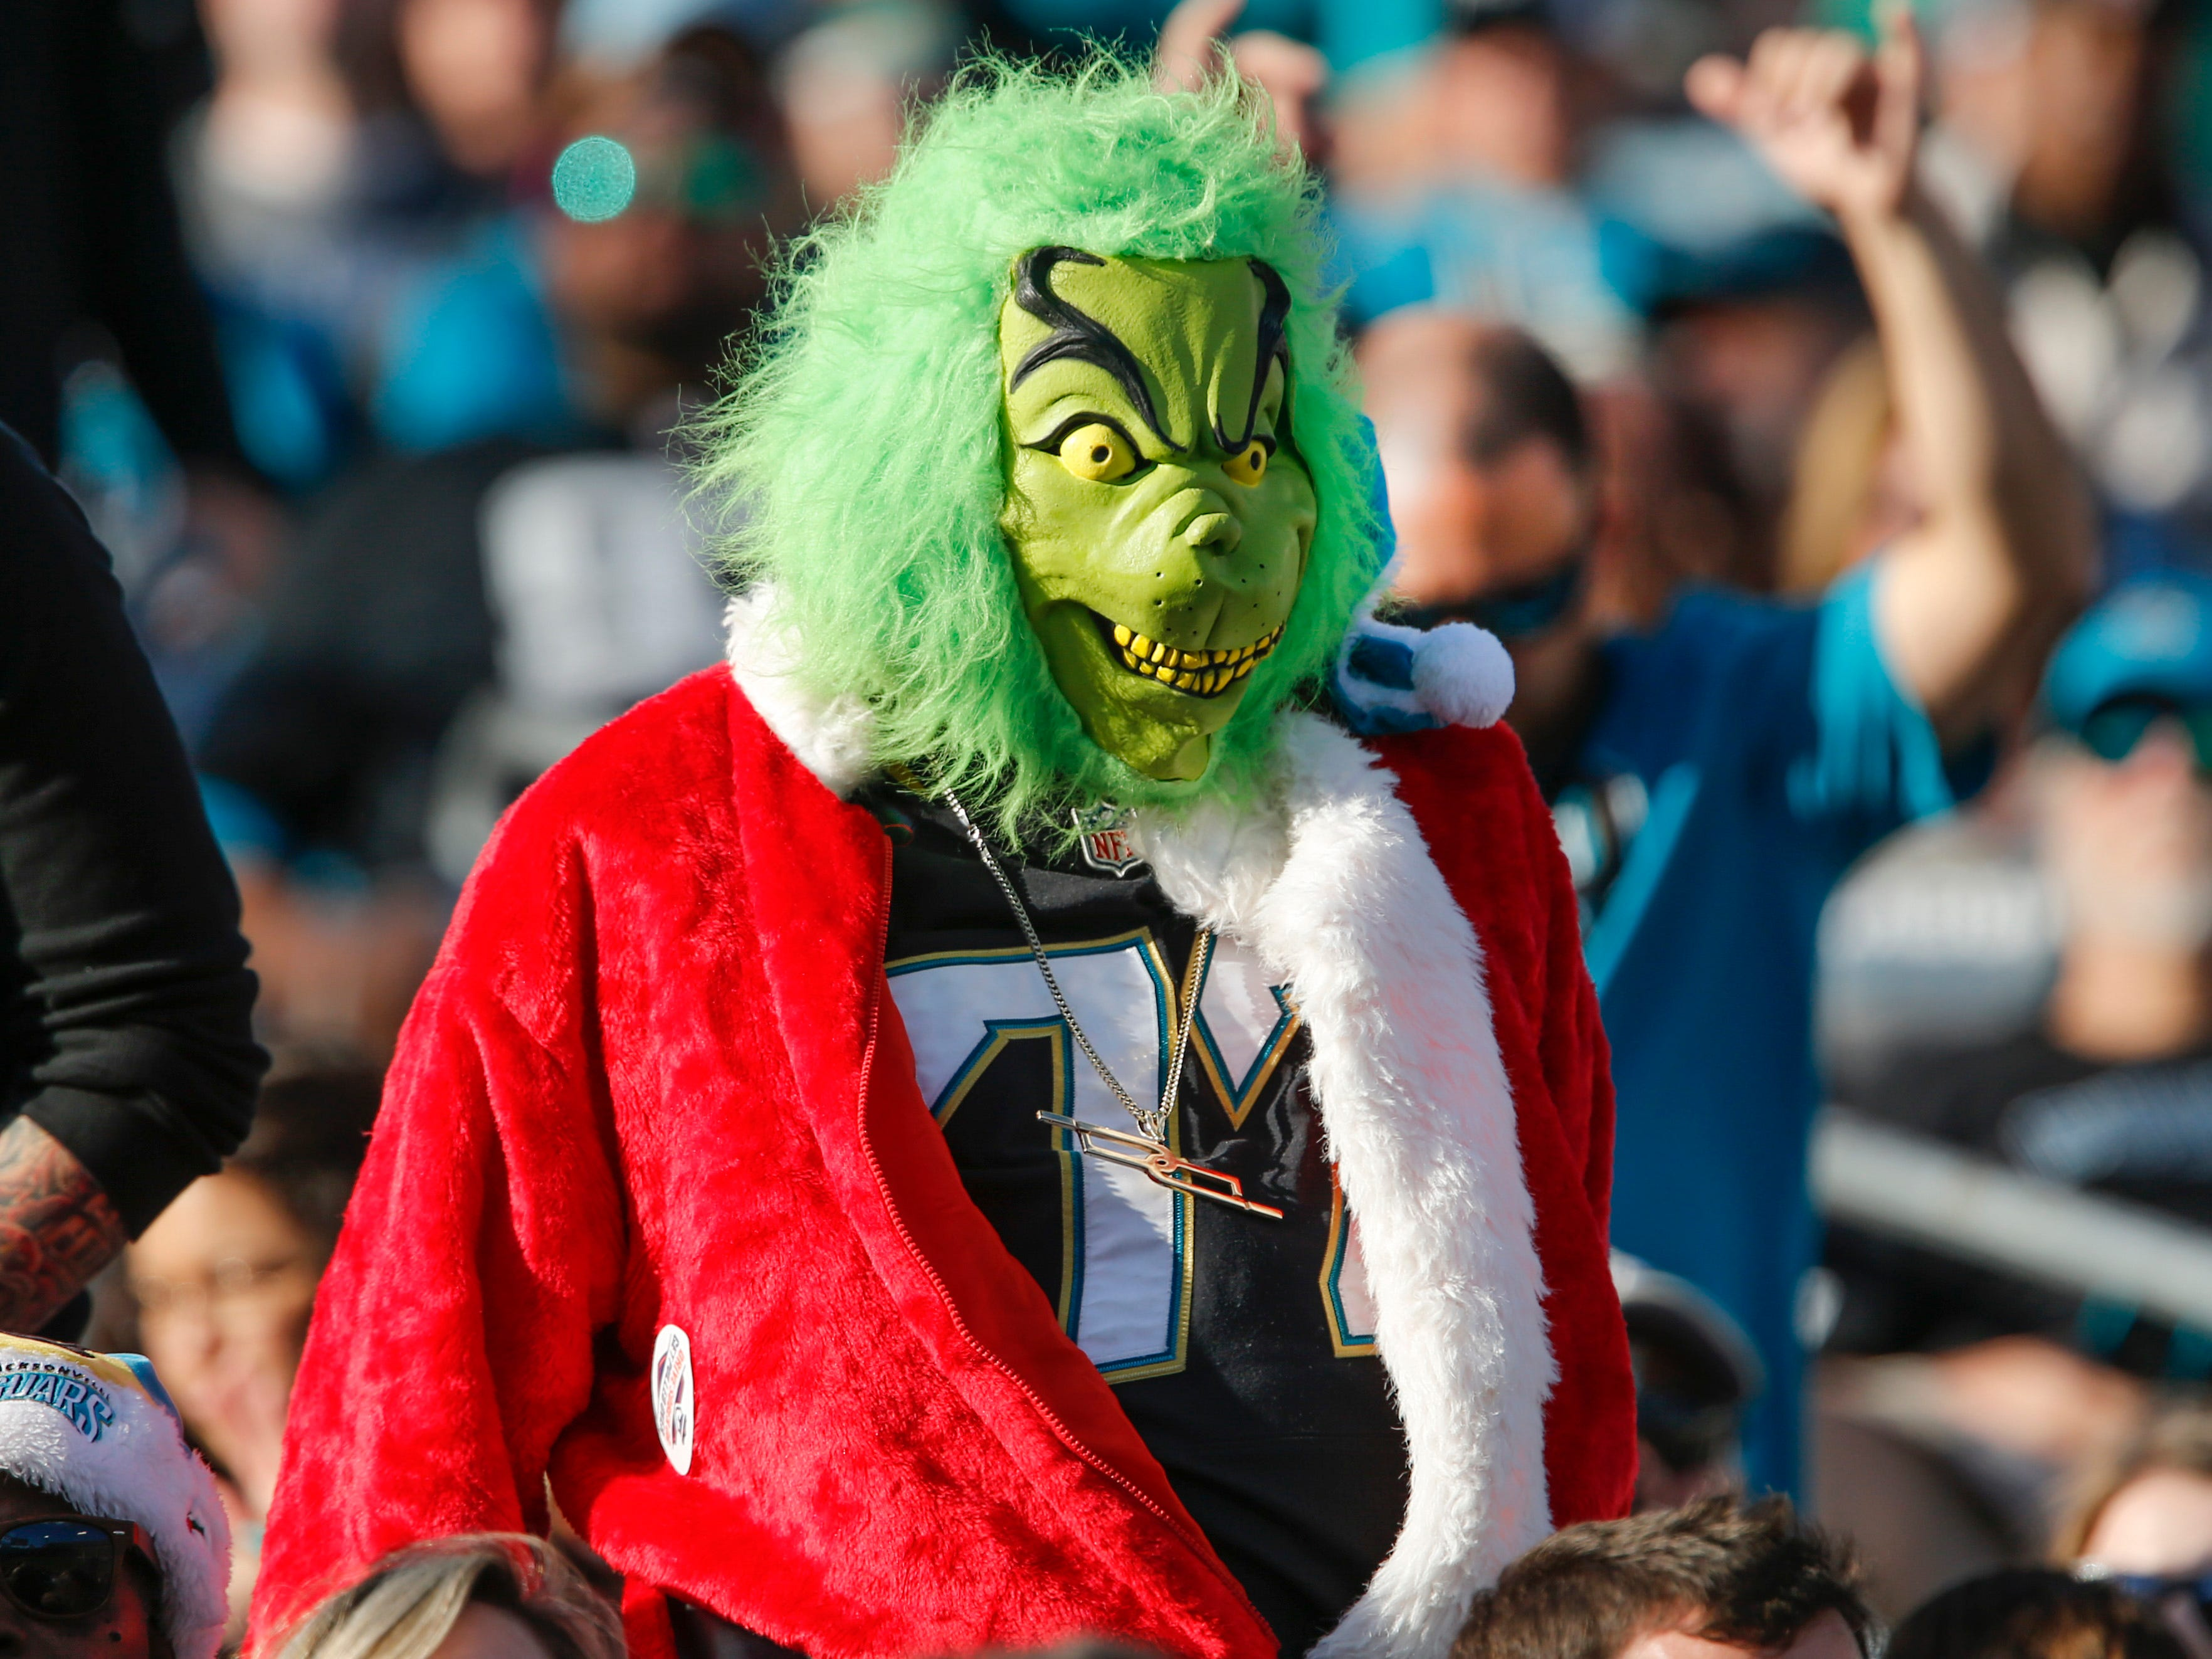 A fan dressed as the Grinch looks on as Jacksonville Jaguars take on the Washington Redskins during the fourth quarter at TIAA Bank Field.